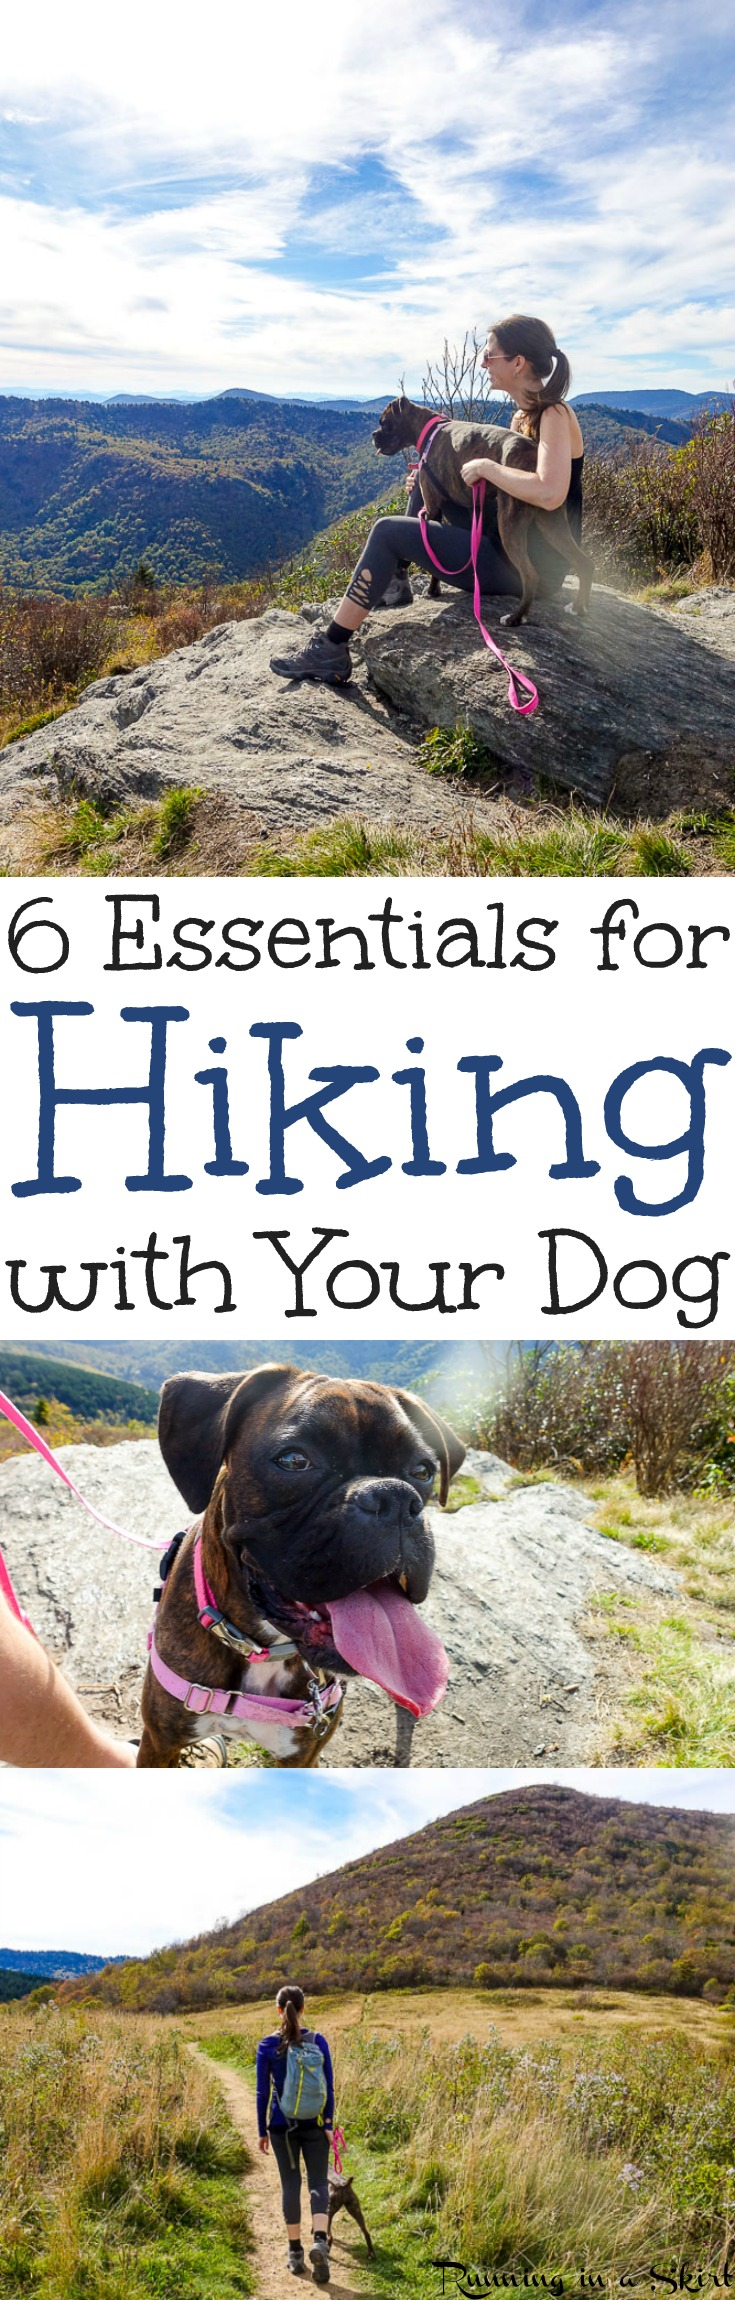 6 Essential Tips for Hiking with Dogs. -  including things to do and thoughts for keeping your pet safe. Includes trail training and backpacking for a fun and awesome time on local trails, National Parks in the U.S. States in fall, summer, winter and spring!  Gorgeous wanderlust photography! / Running in a Skirt  via @juliewunder